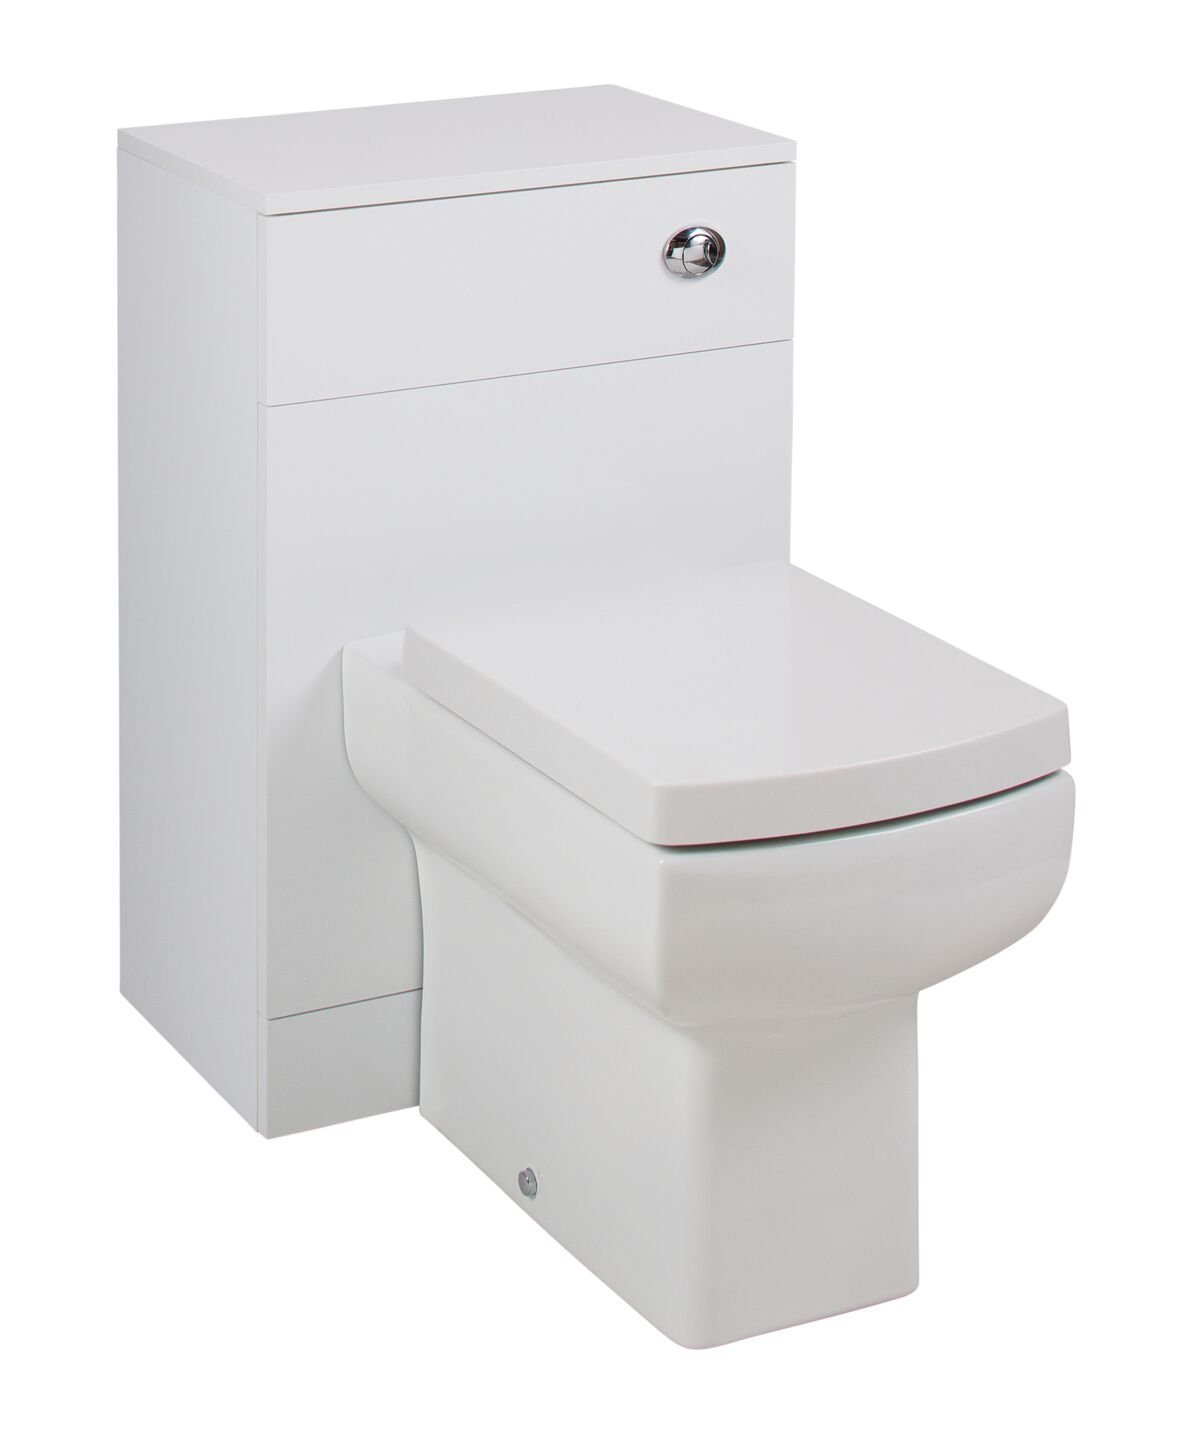 Cassellie Kass WC Unit with Daisy Lou Back to Wall Pan & Seat - 500mm Wide x 820mm Deep - White